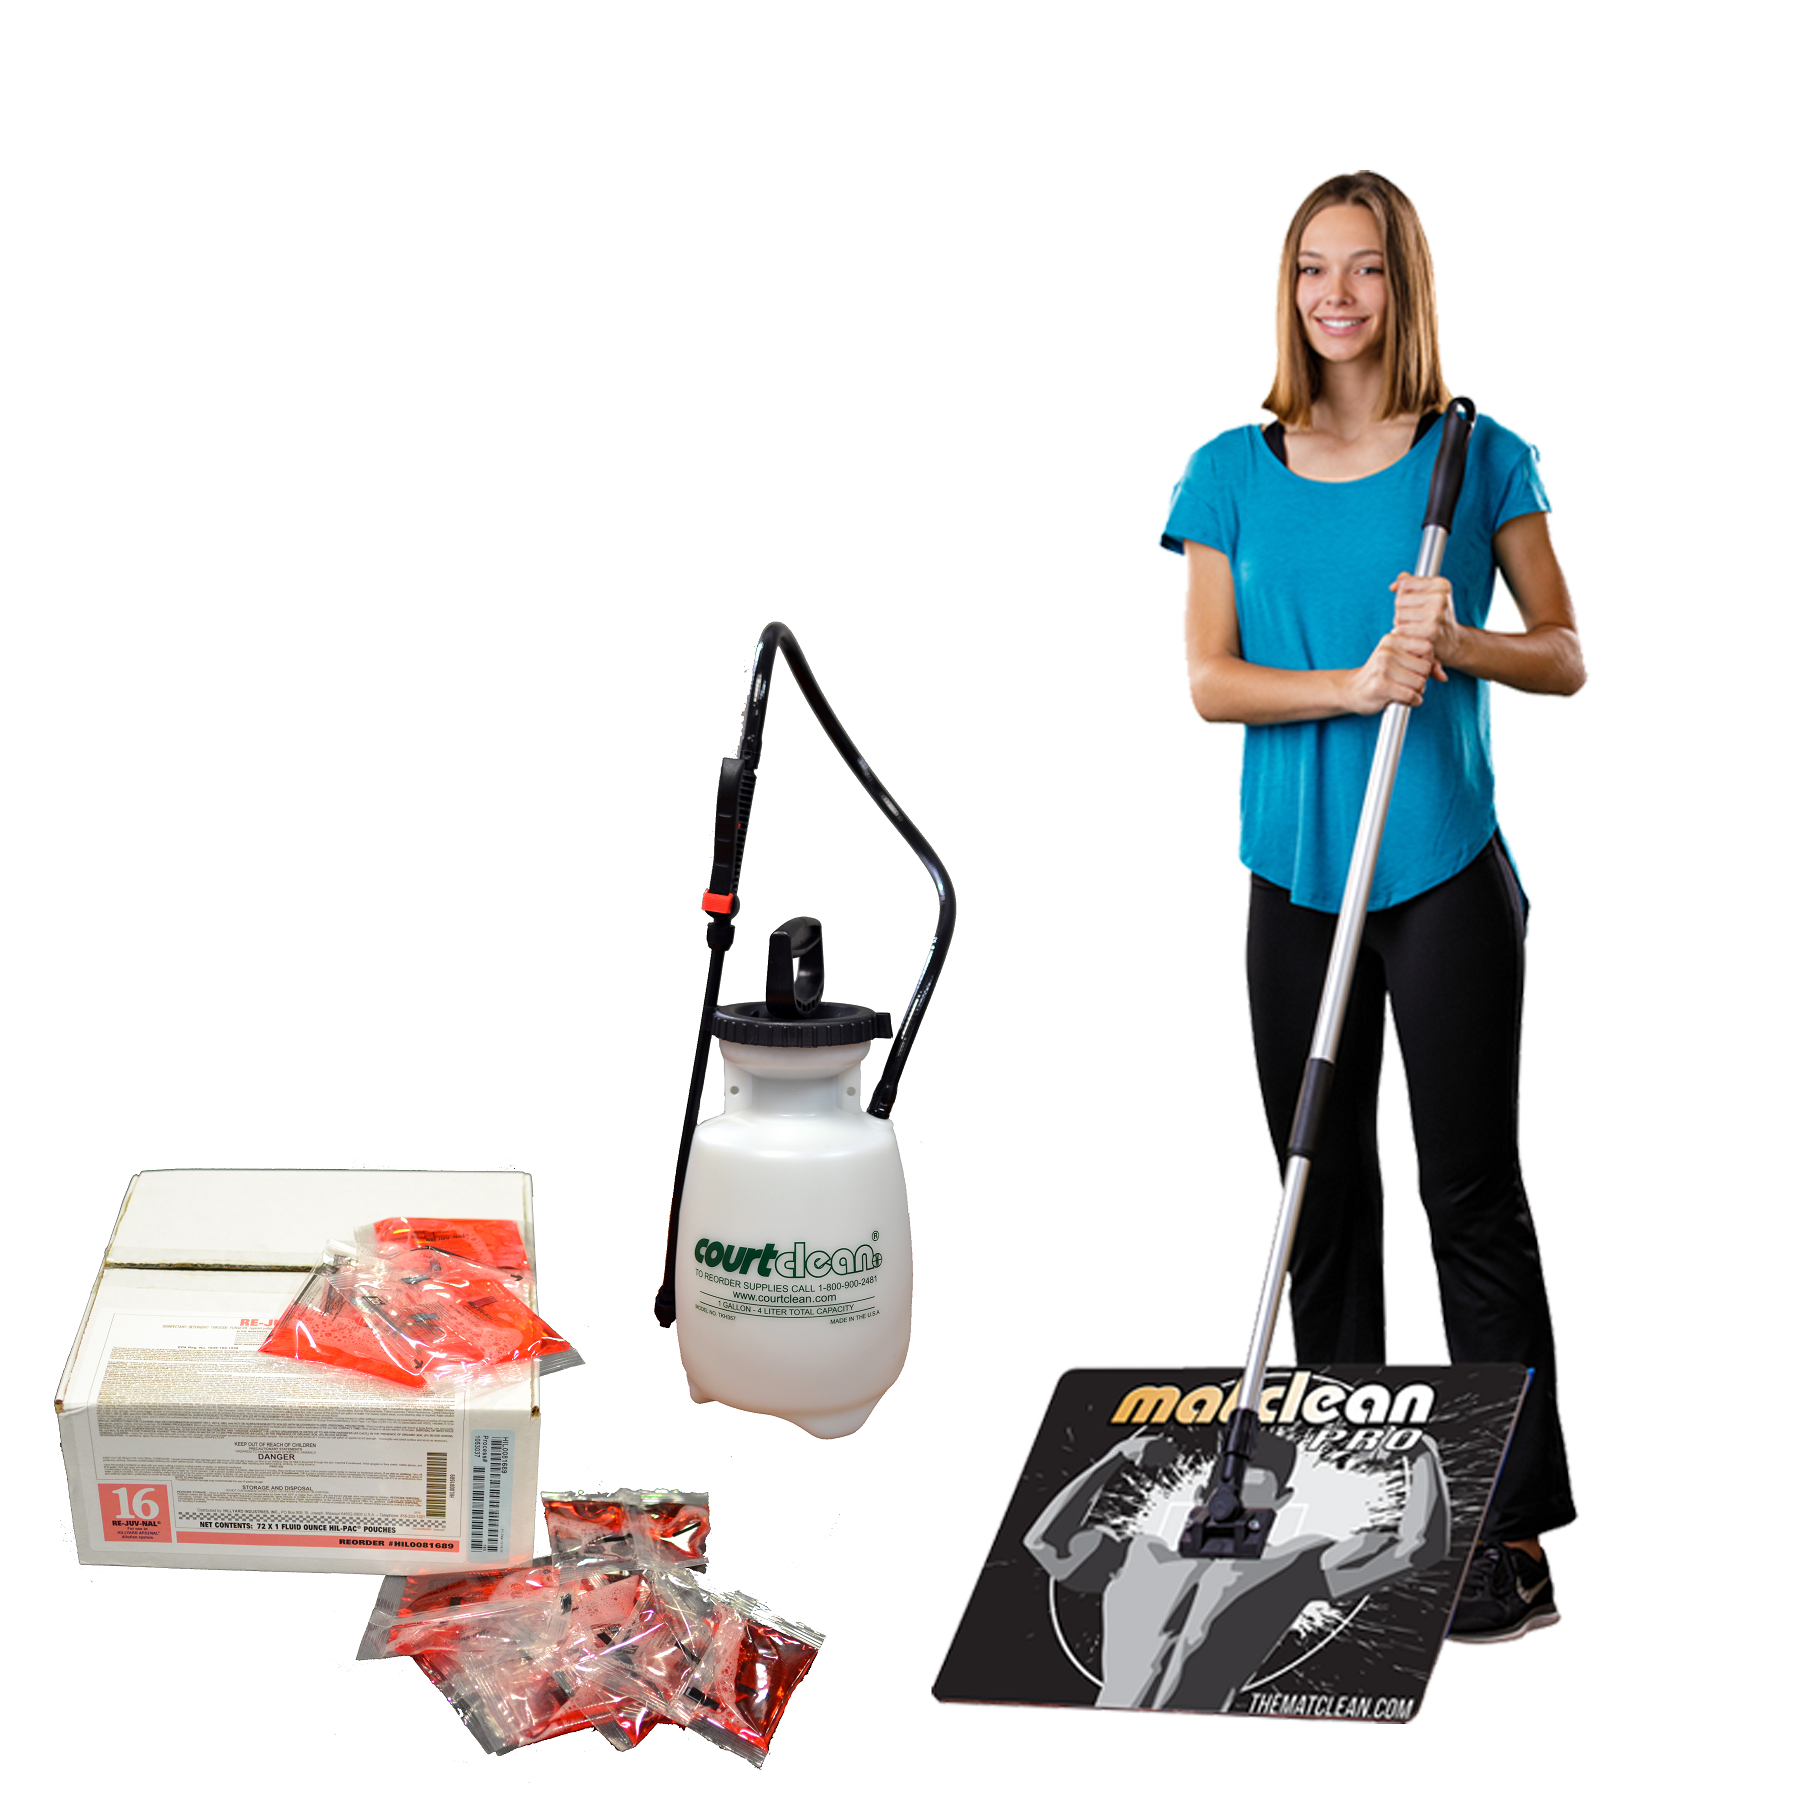 Matclean Pro Value Package